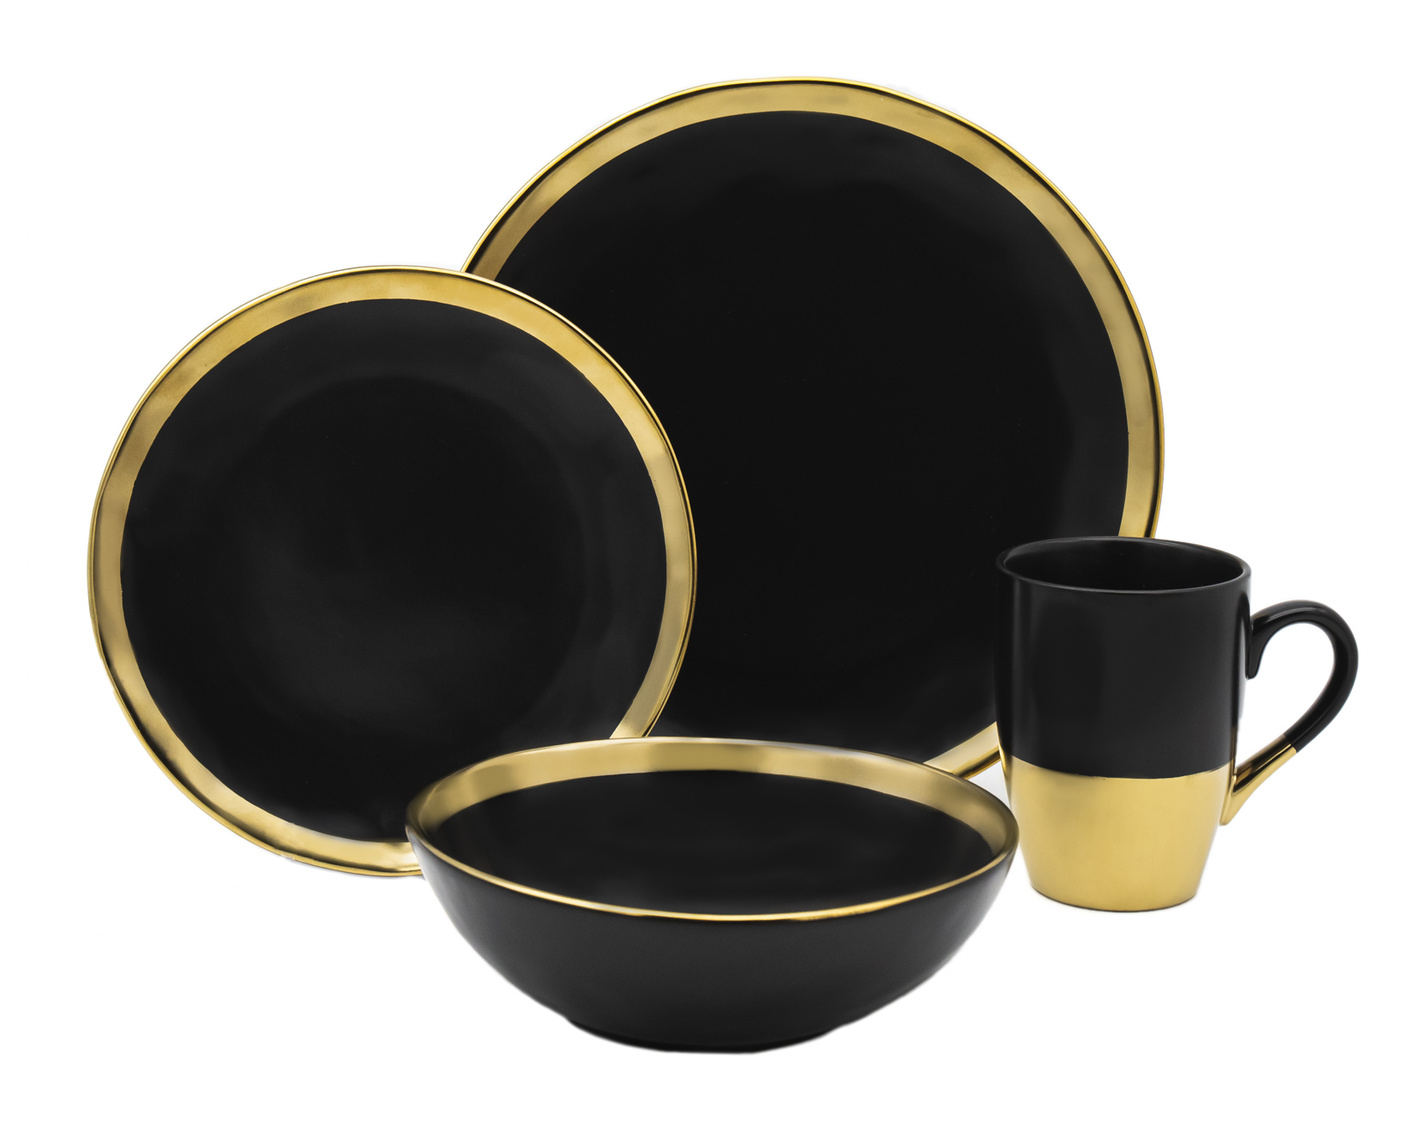 Golden Onyx 4 Piece Dinner Set  Black Gold